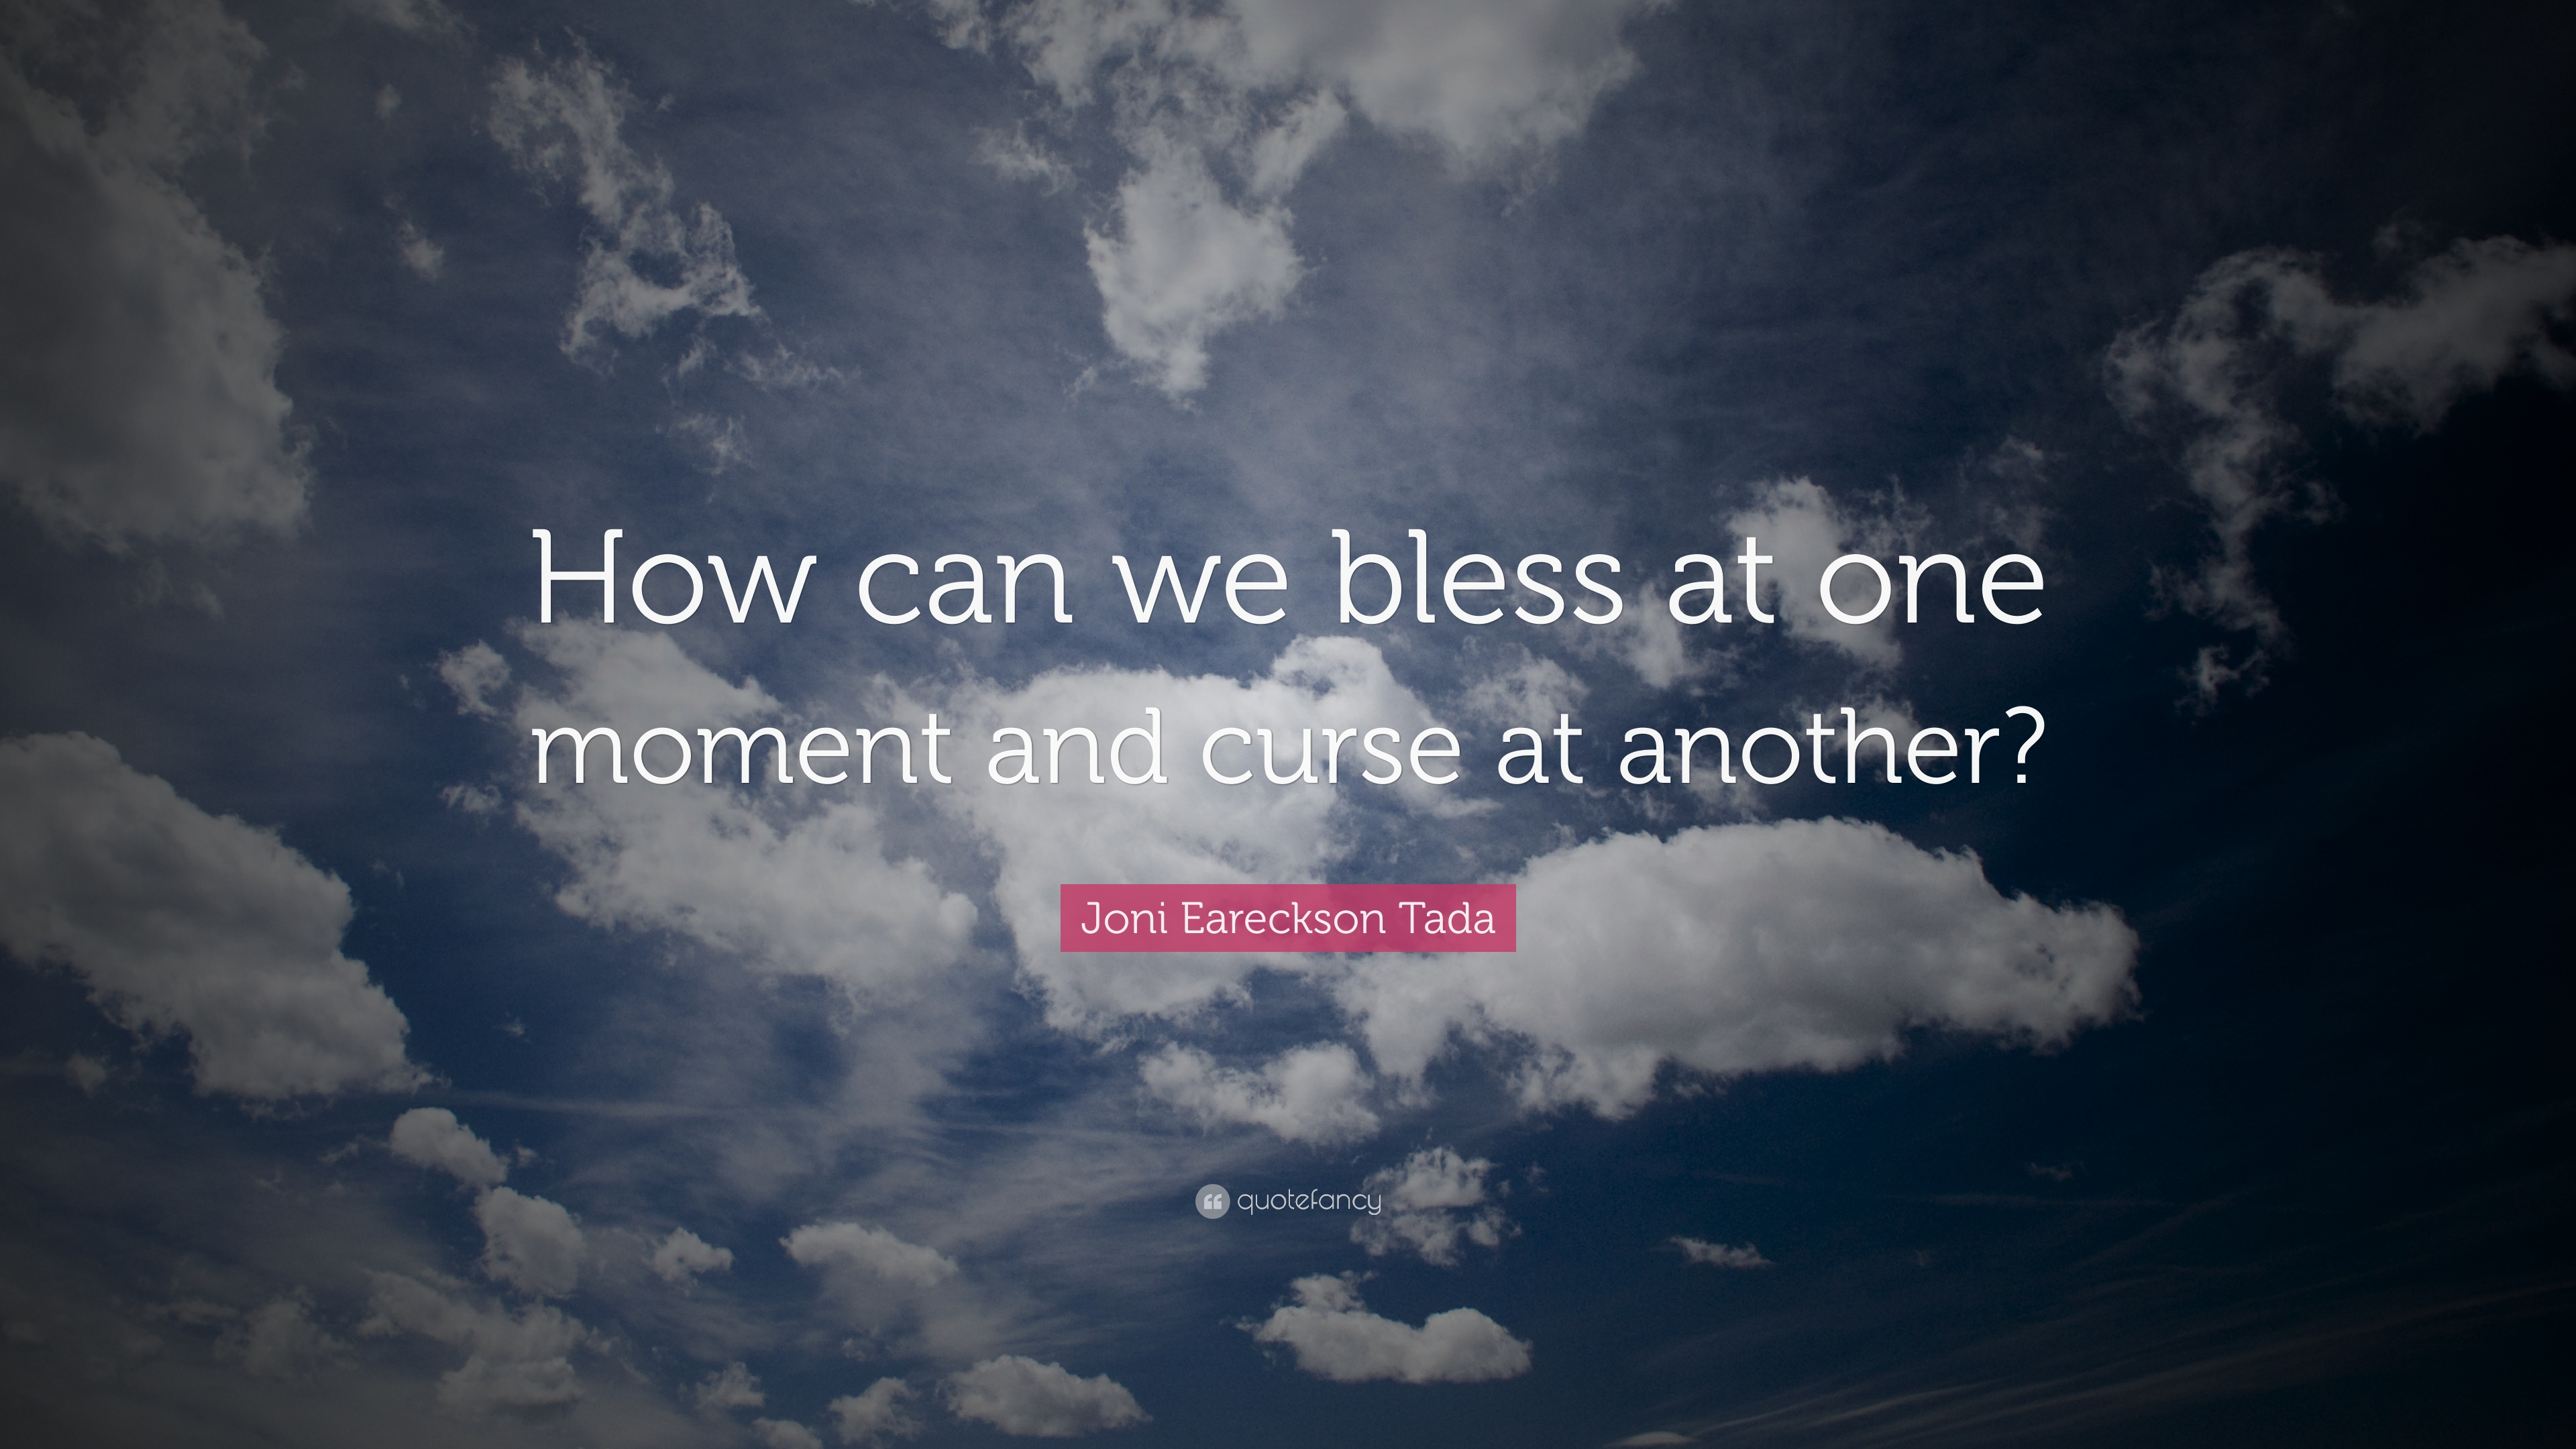 Joni Eareckson Tada Quote How Can We Bless At One Moment And Curse